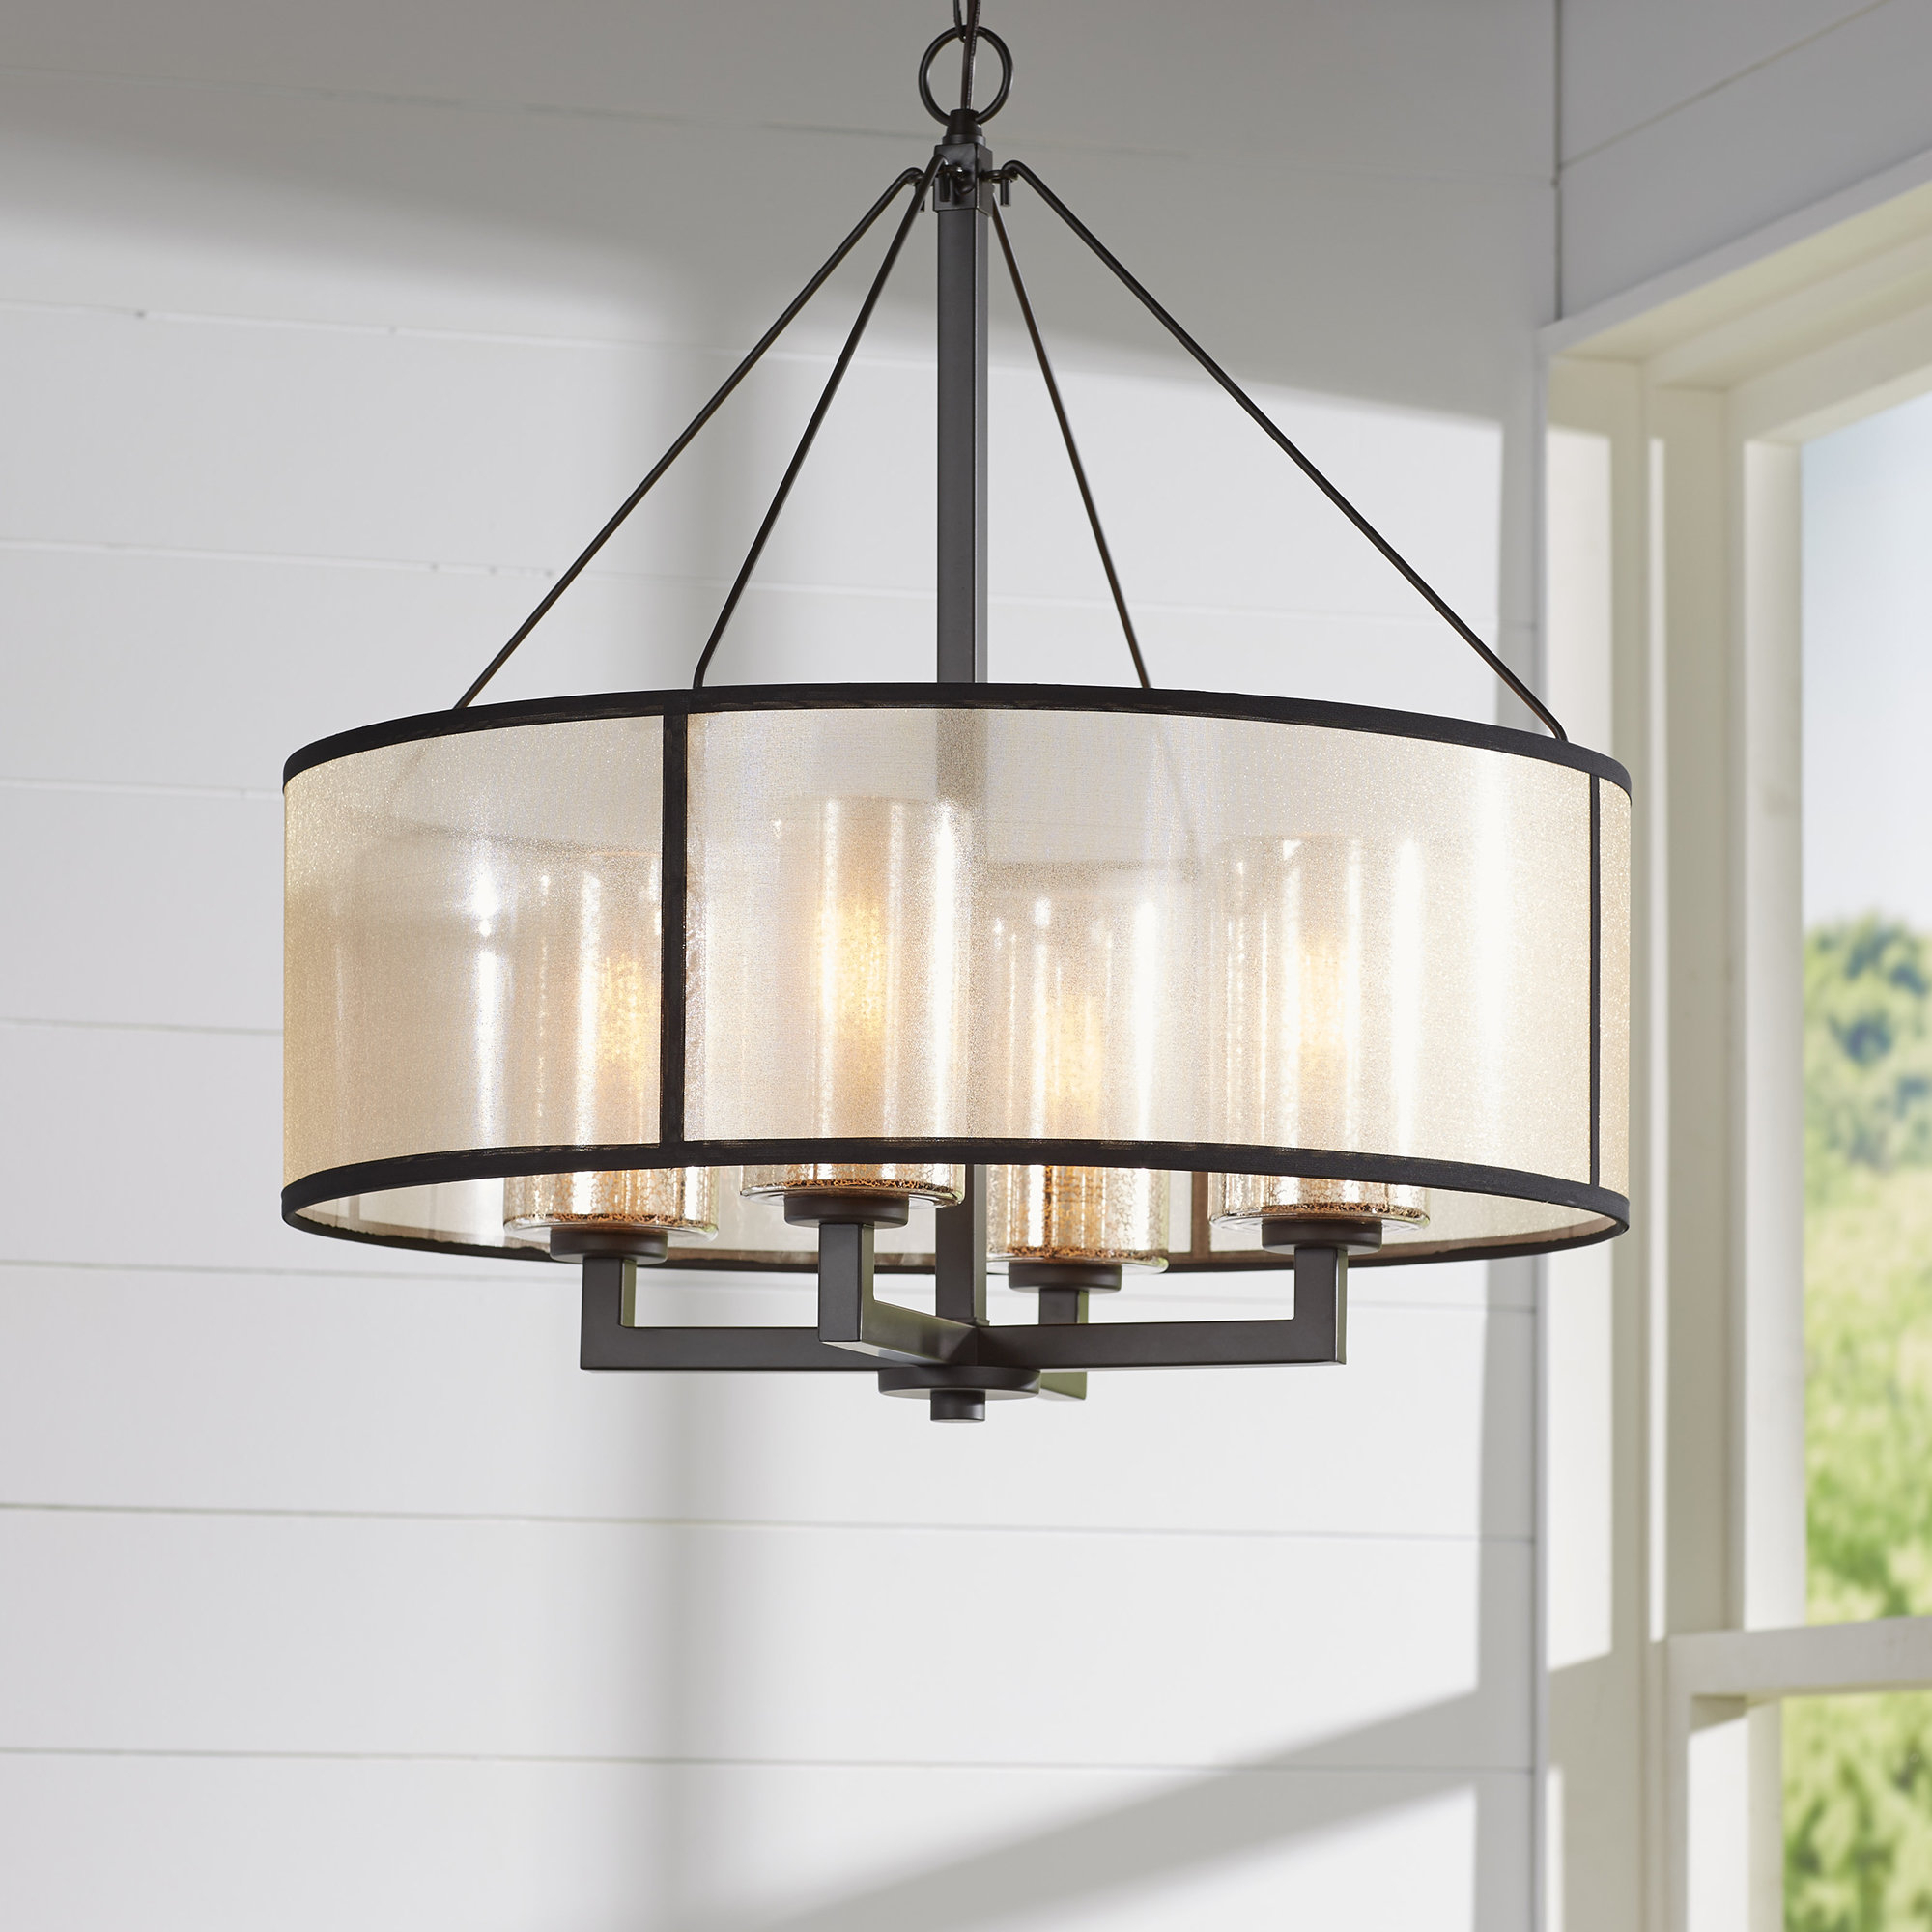 Newest Lindsey 4 Light Drum Chandeliers Pertaining To Bisbee 4 Light Drum Chandelier (View 7 of 25)